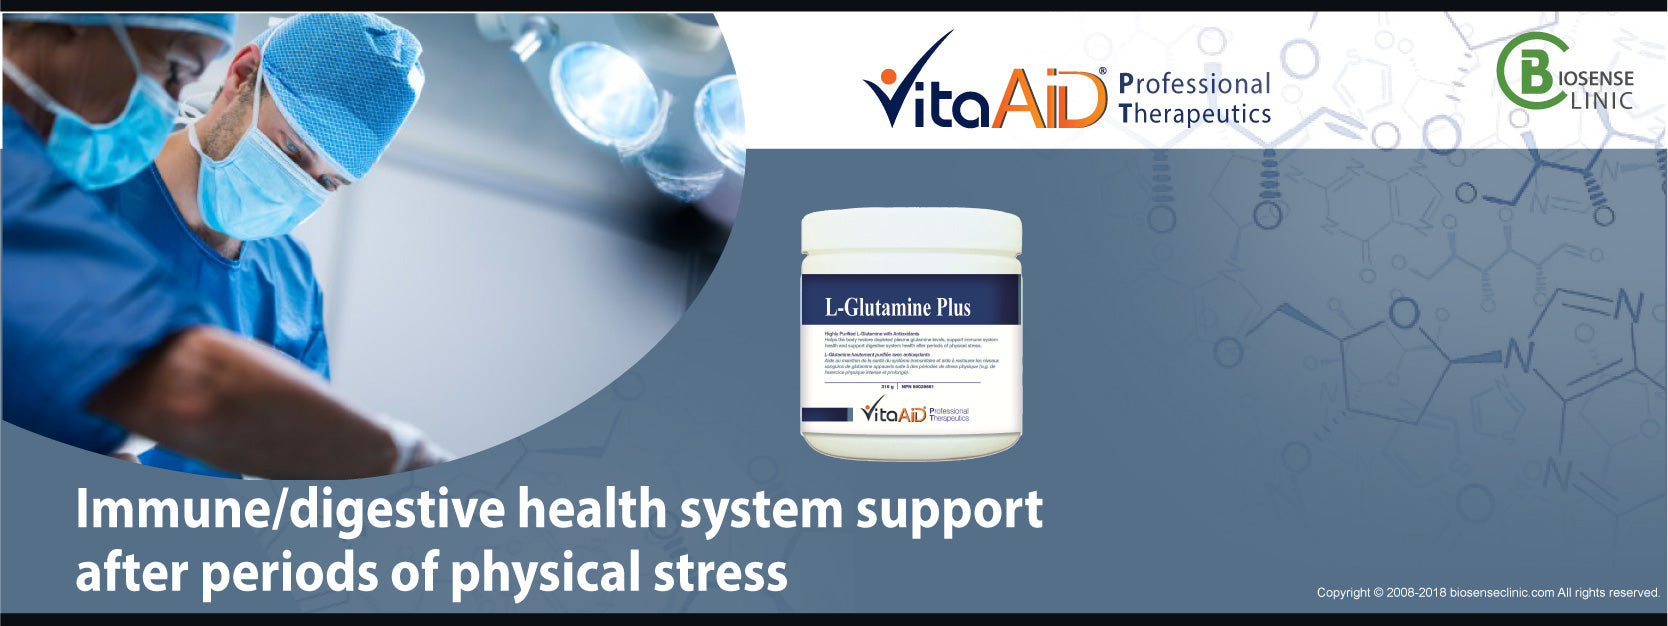 VitaAid category banner Immune/digestive health system support after periods of physical stress